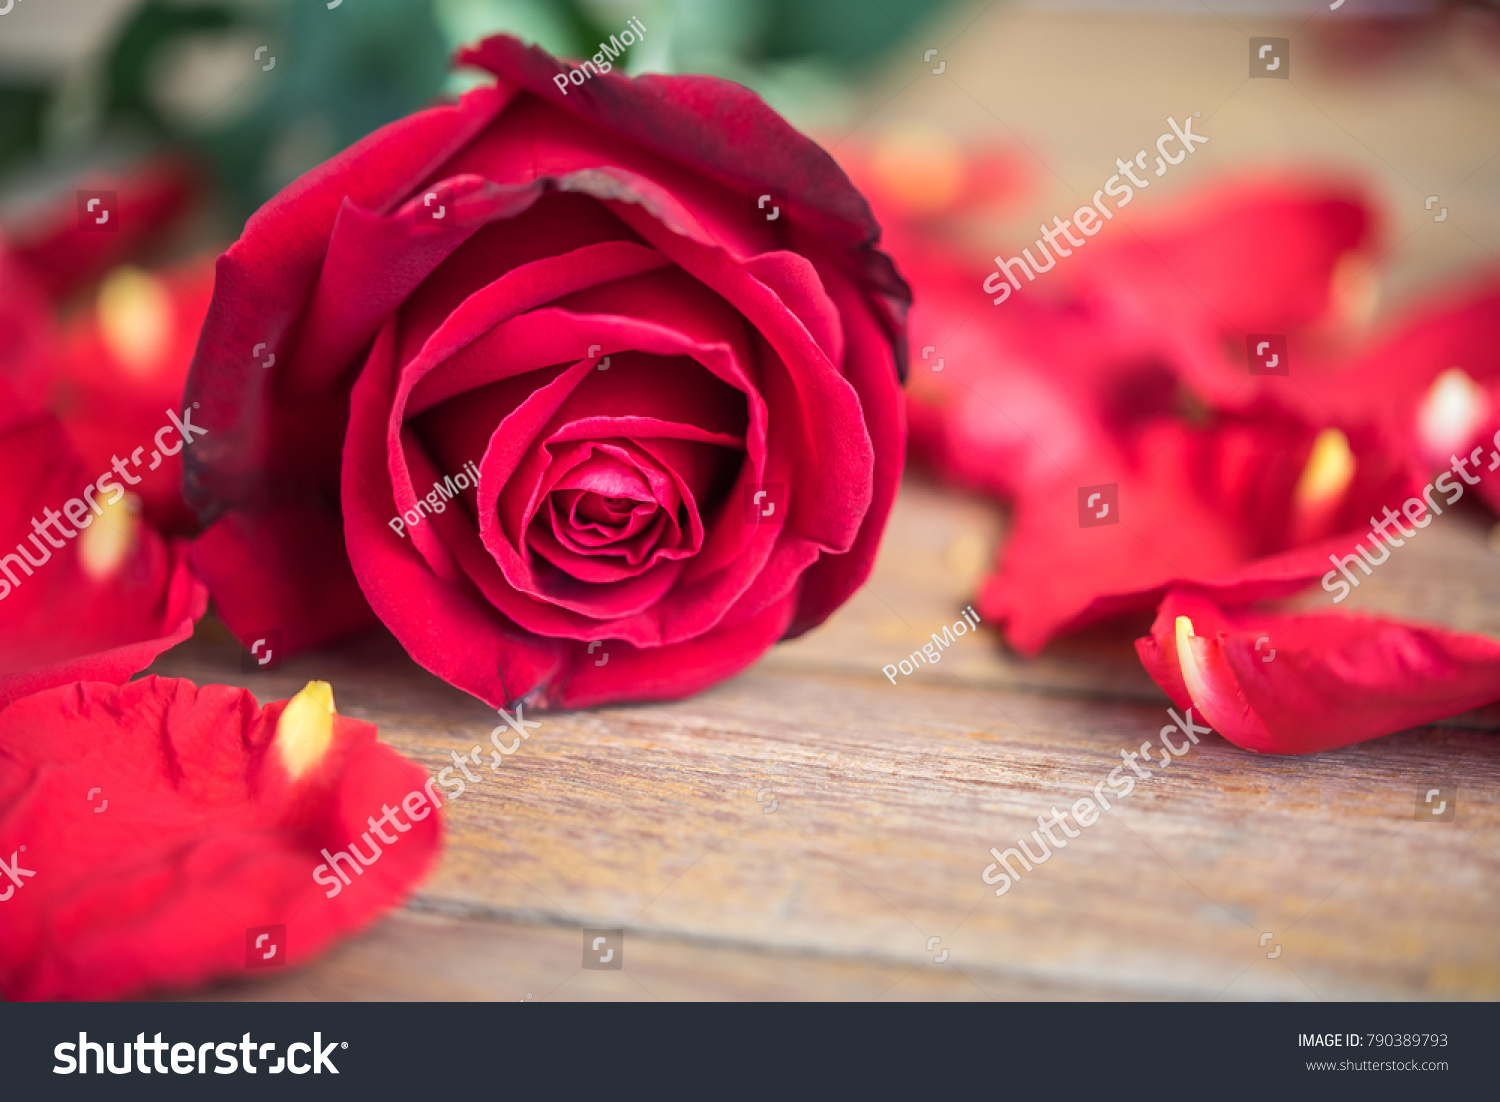 Red rose flower nature beautiful flowers stock photo royalty free red rose flower nature beautiful flowers from the garden and petal of red rose flower on izmirmasajfo